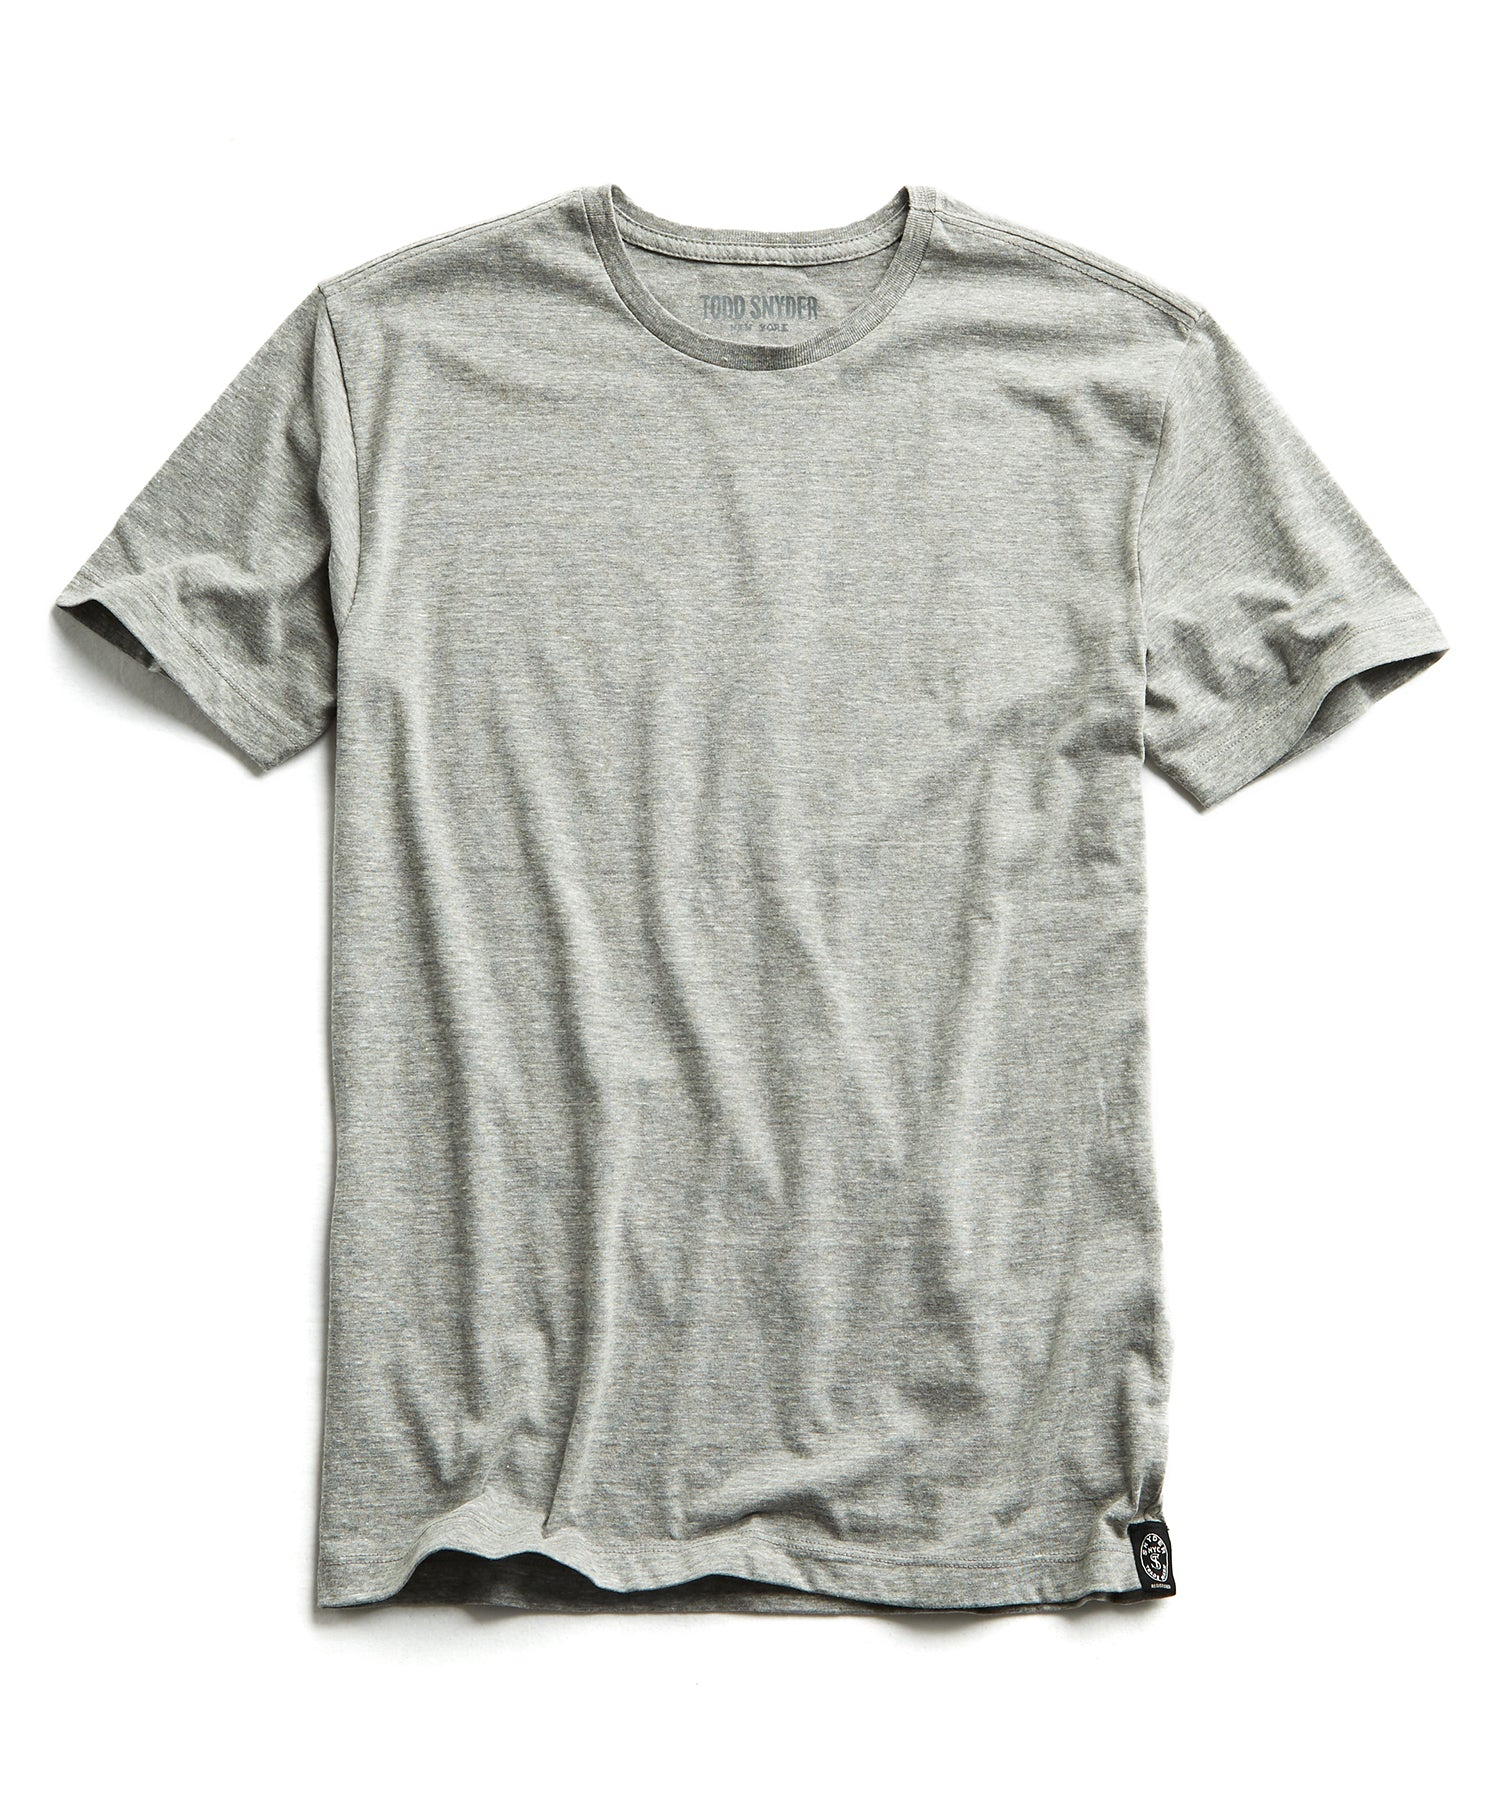 Heather T-Shirt in Pebble Grey